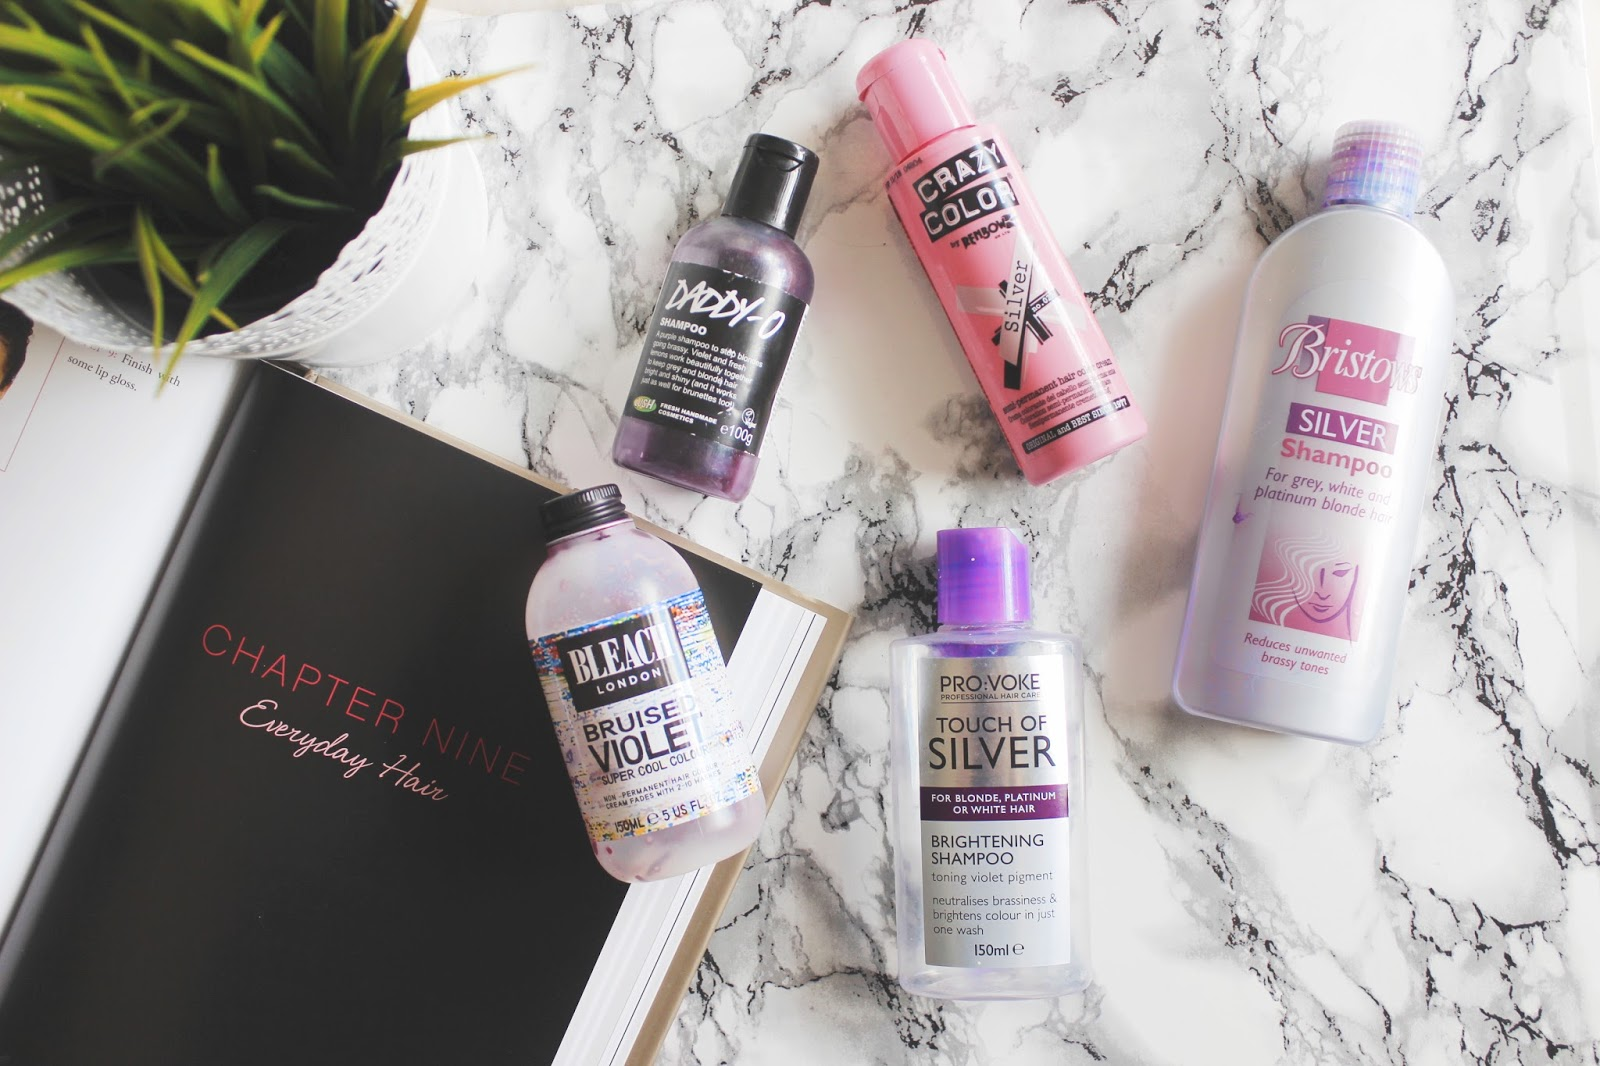 See The Stars - EMPTIES #1: GREY/PURPLE HAIR PRODUCTS.